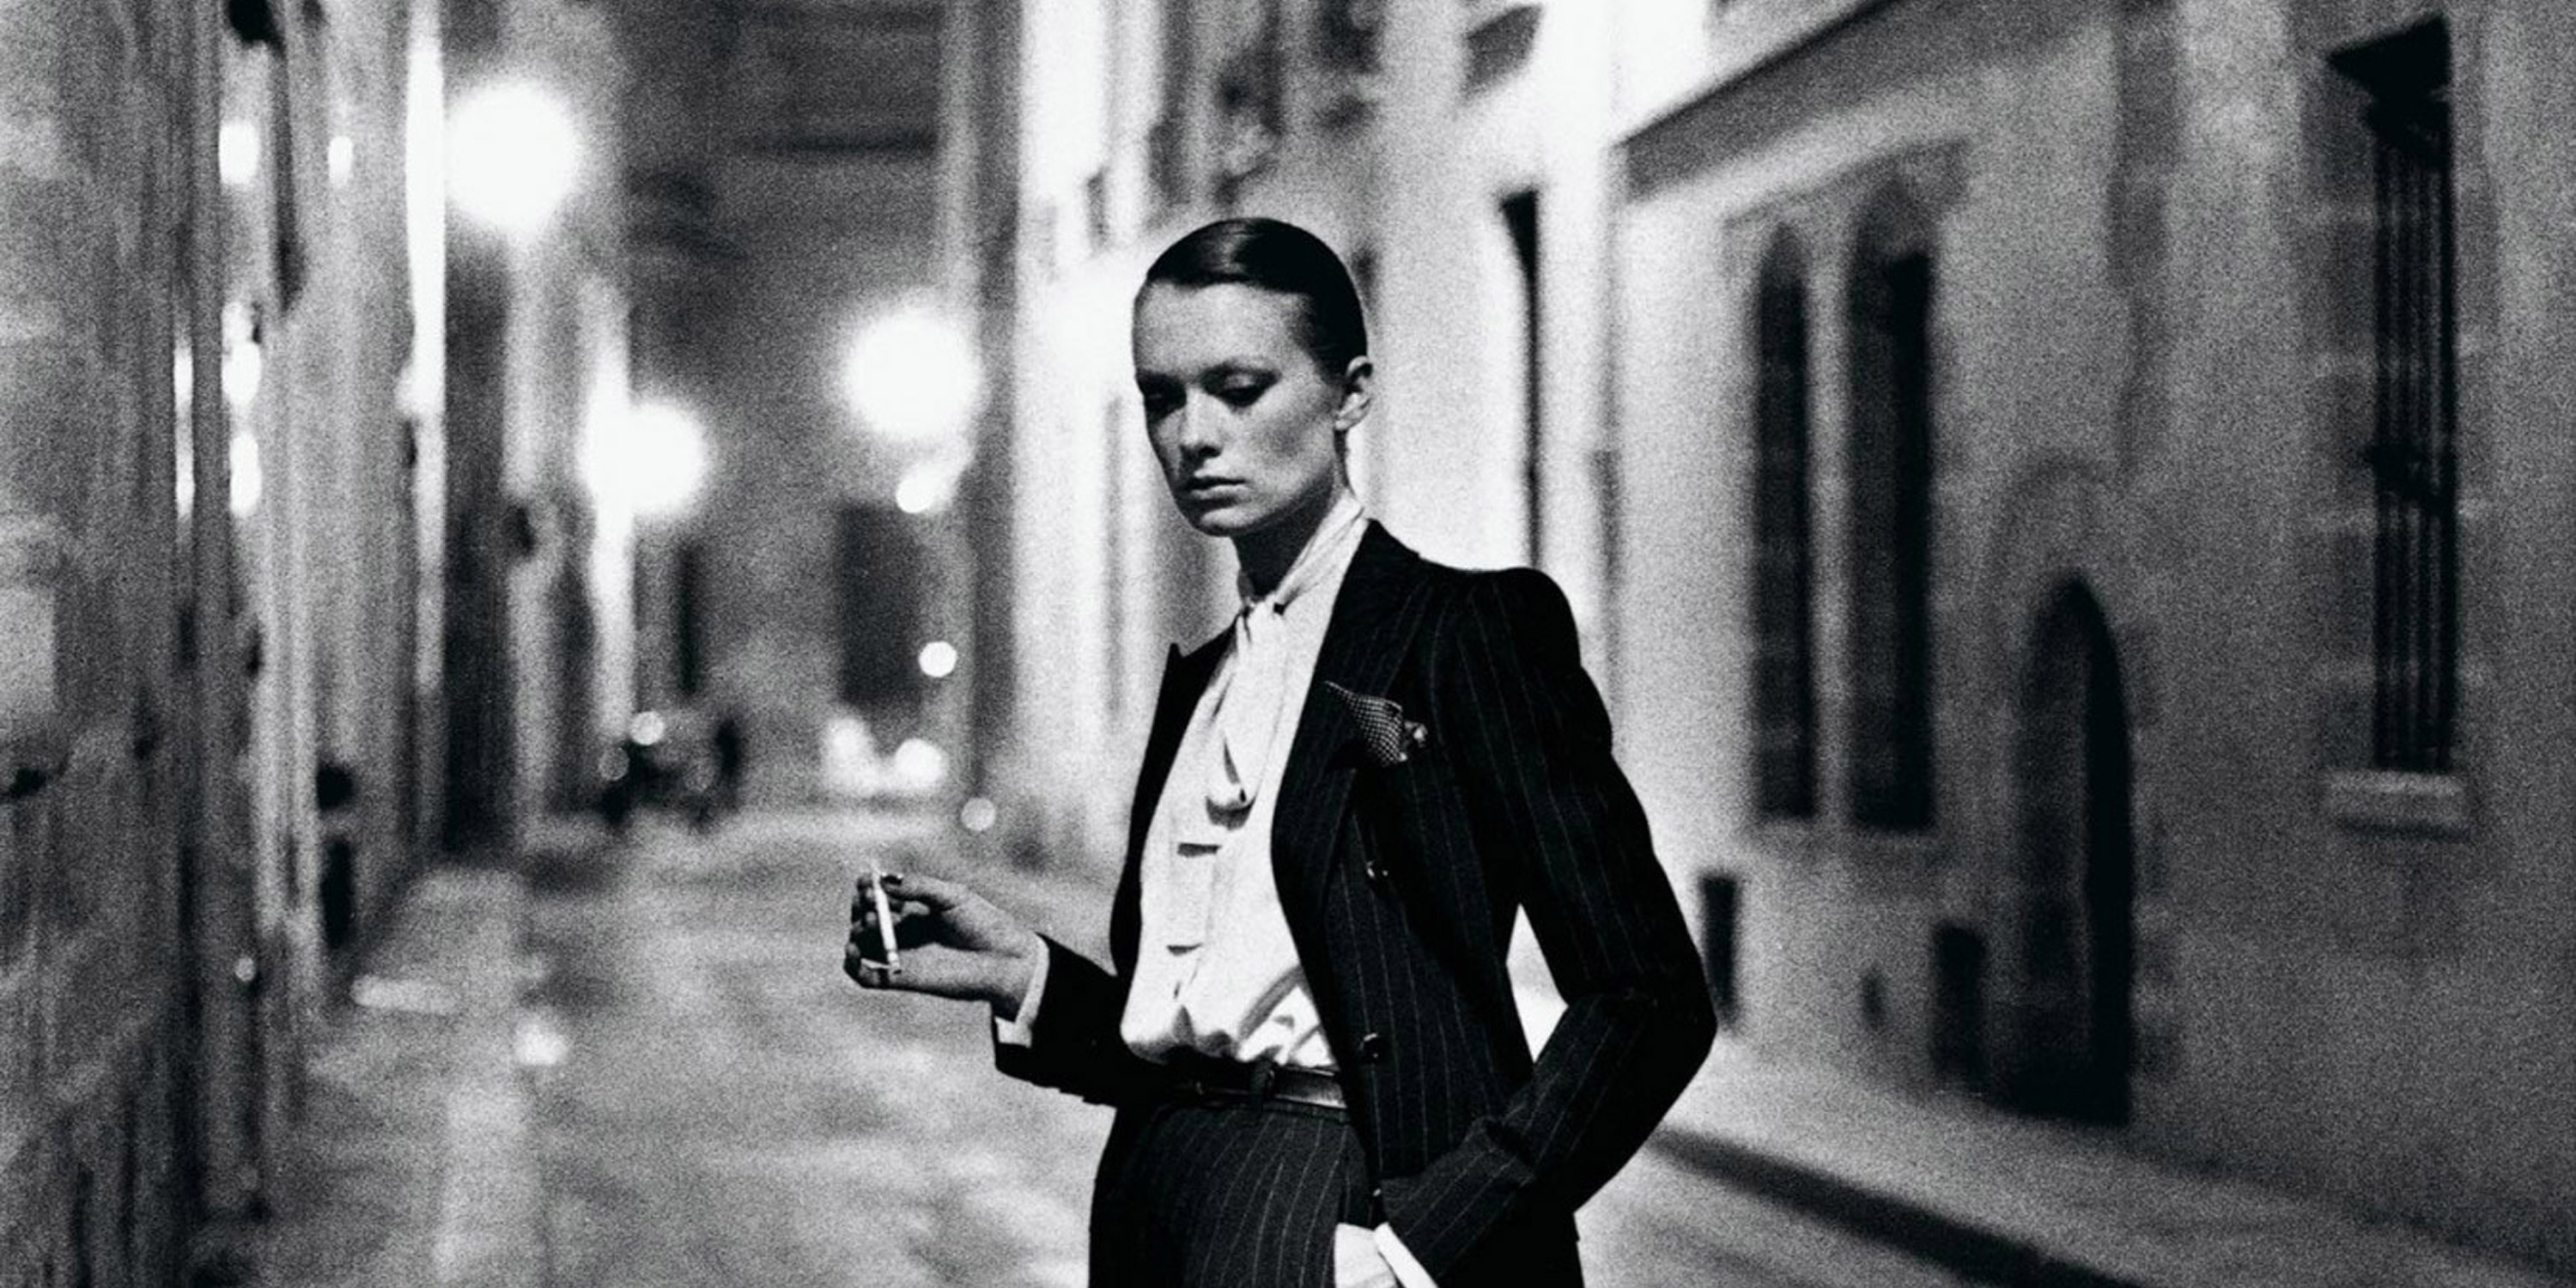 Helmut newton iconic fashion photographer